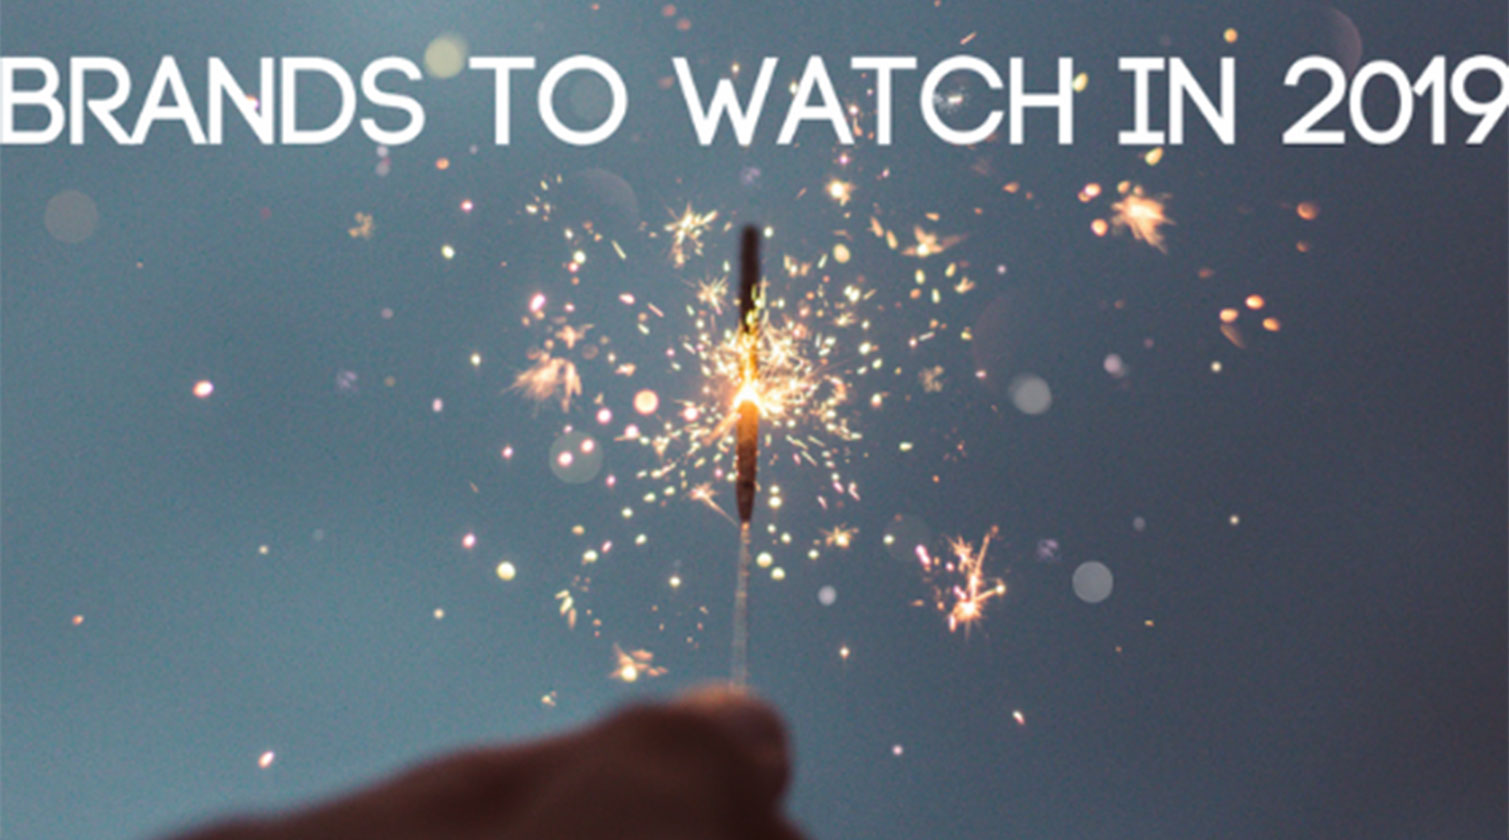 Brands to watch in 2019 with a firework